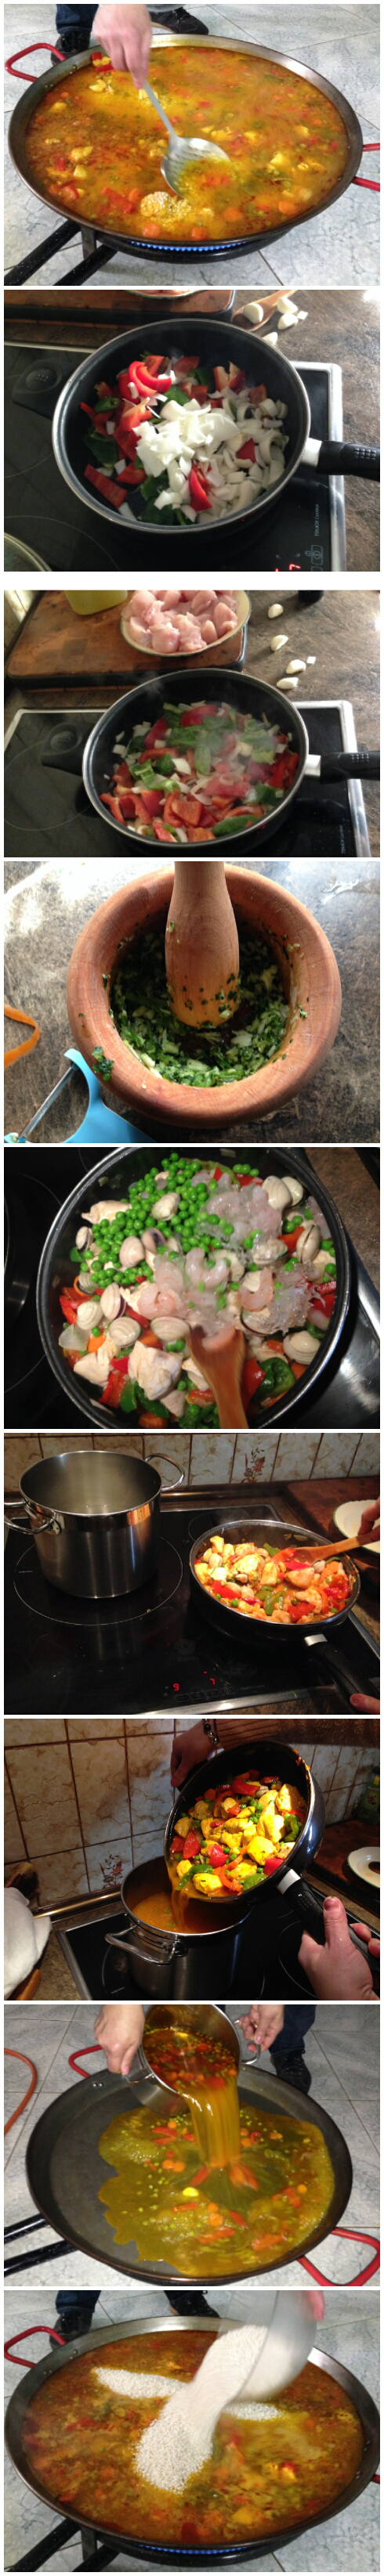 Paella step by step.